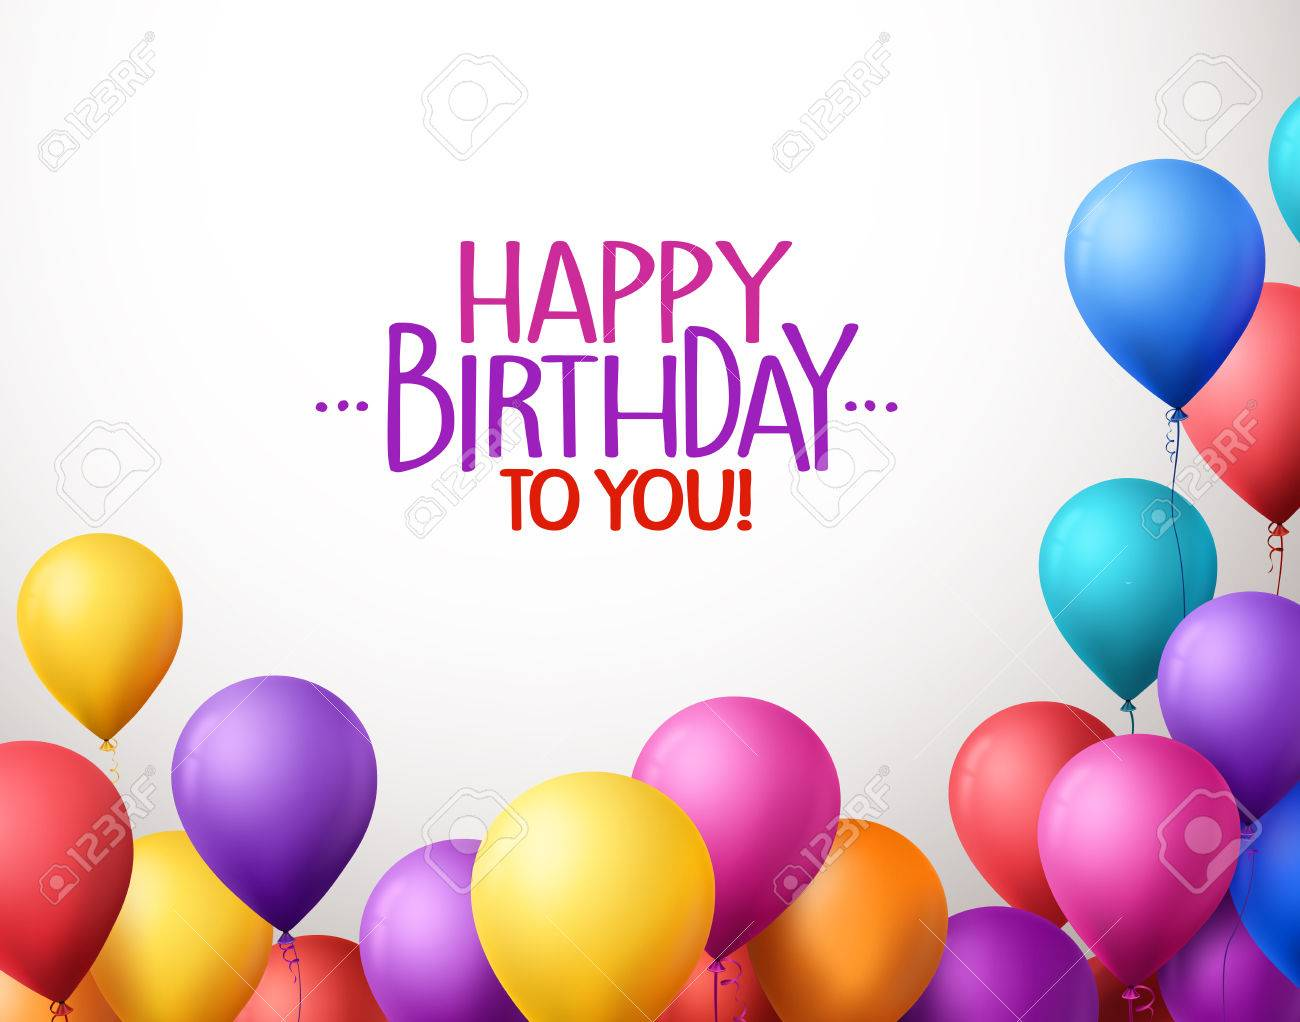 3d Realistic Colorful Bunch of Happy Birthday Balloons Flying for Party and Celebrations With Space for Text Isolated in White Background. Vector Illustration - 48167521